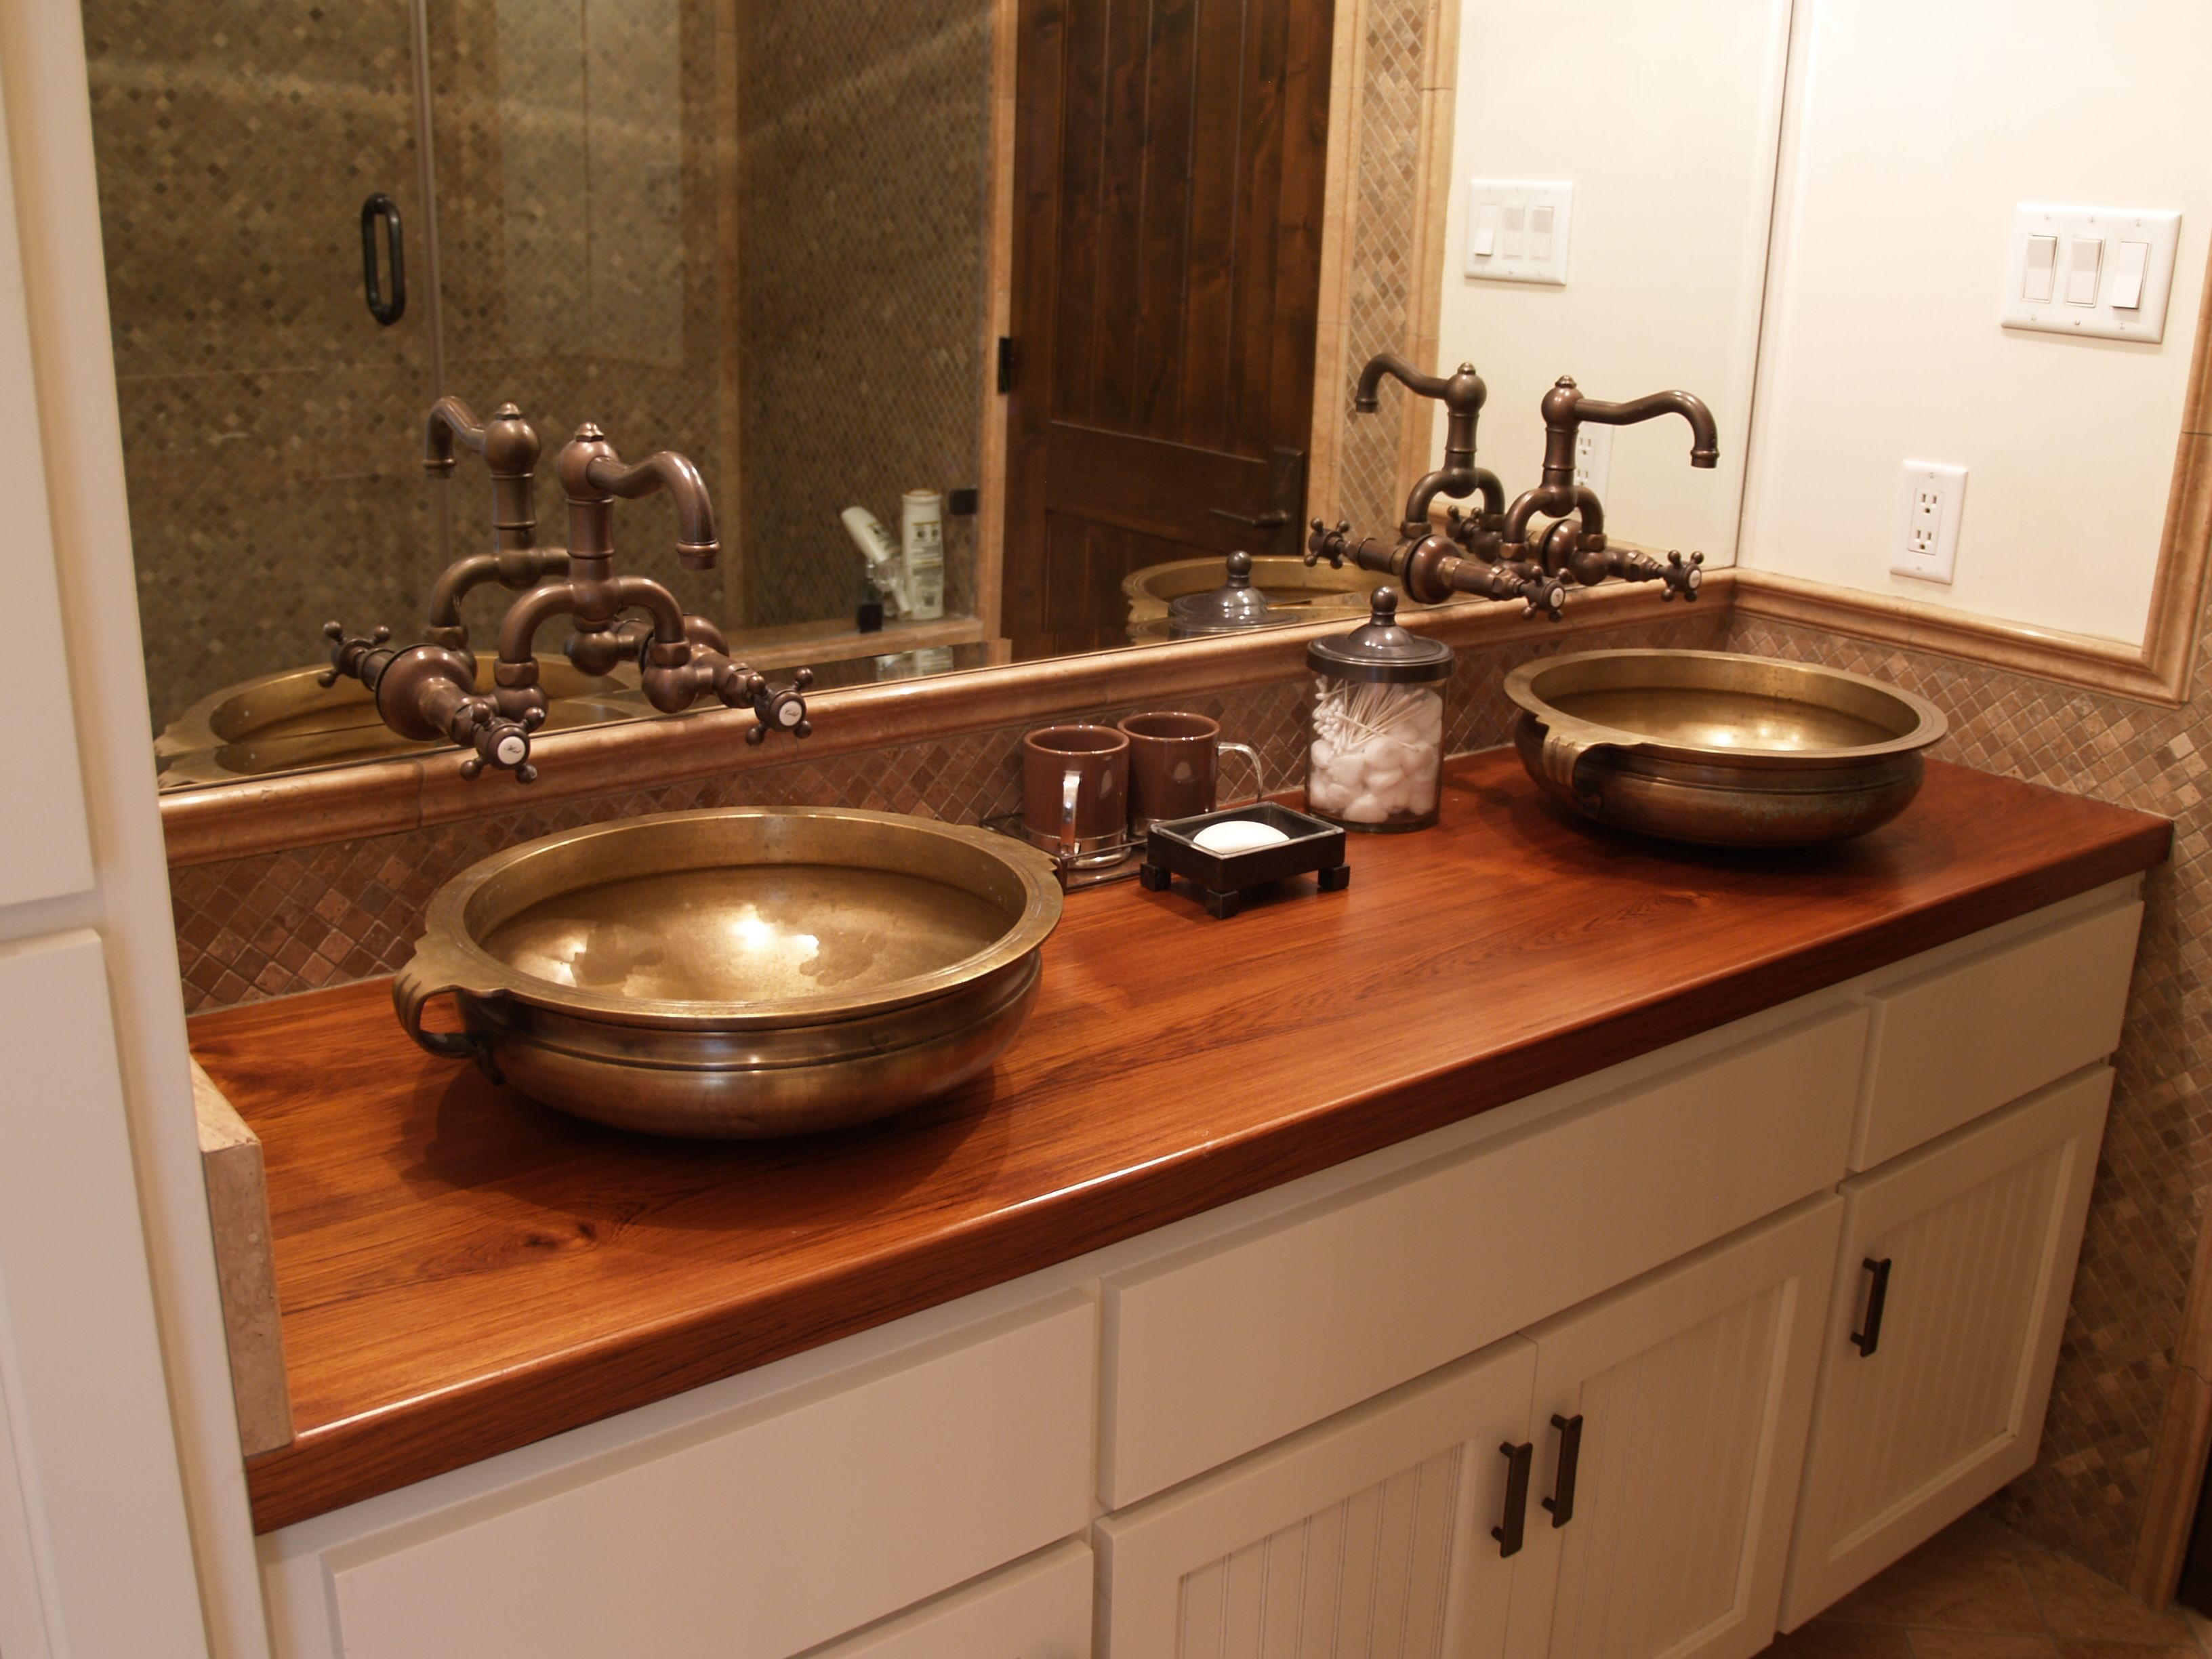 Vessel Sinks Are Free Standing Sinks That Sit Directly On The